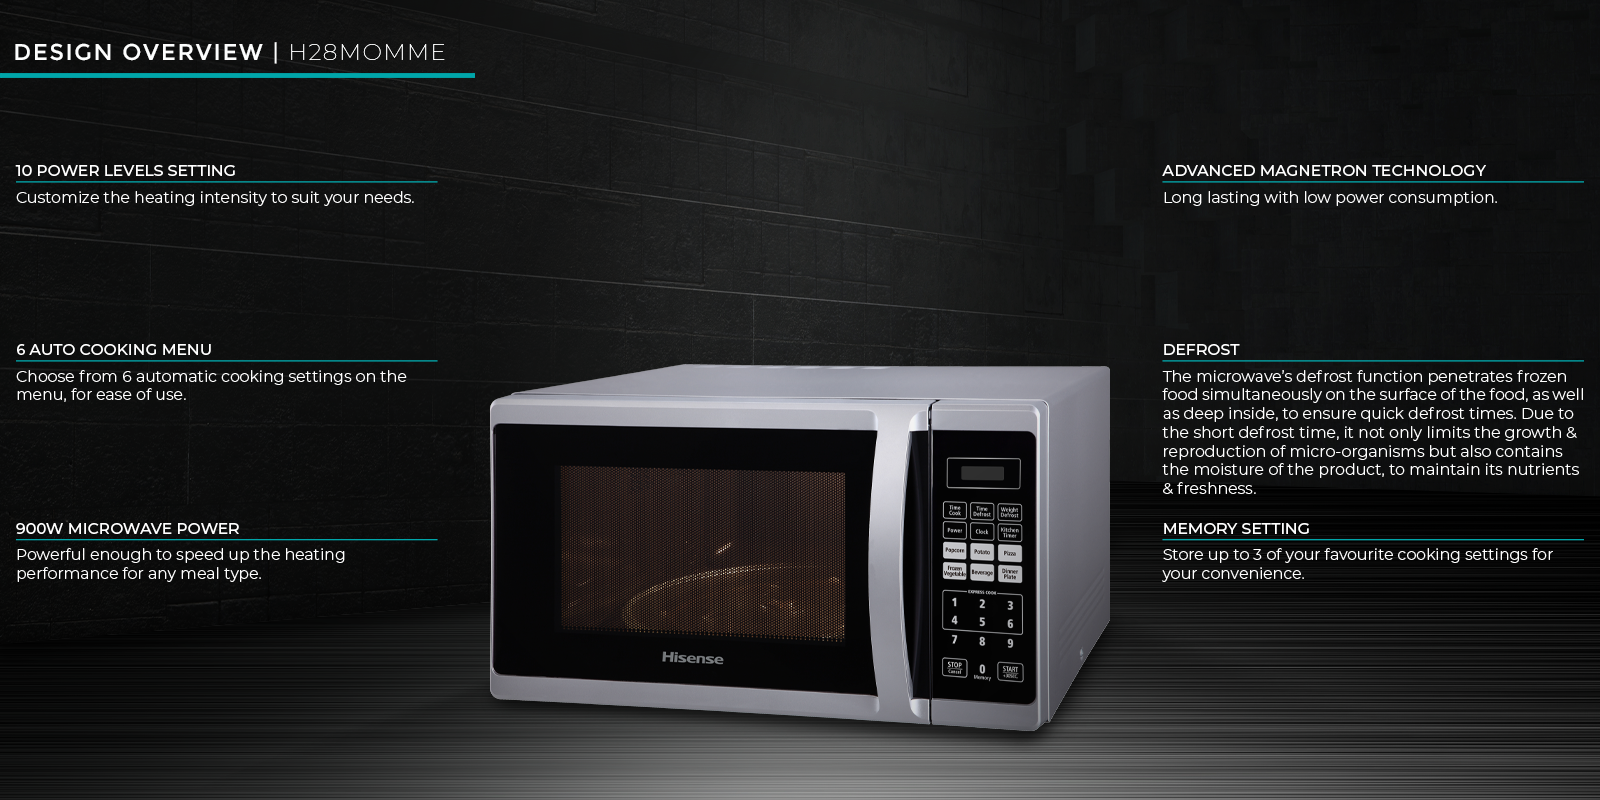 Hisense 28-liter Microwave H28MOMME; 900 watts, 6 auto menus, defrost, 10 power levels setting